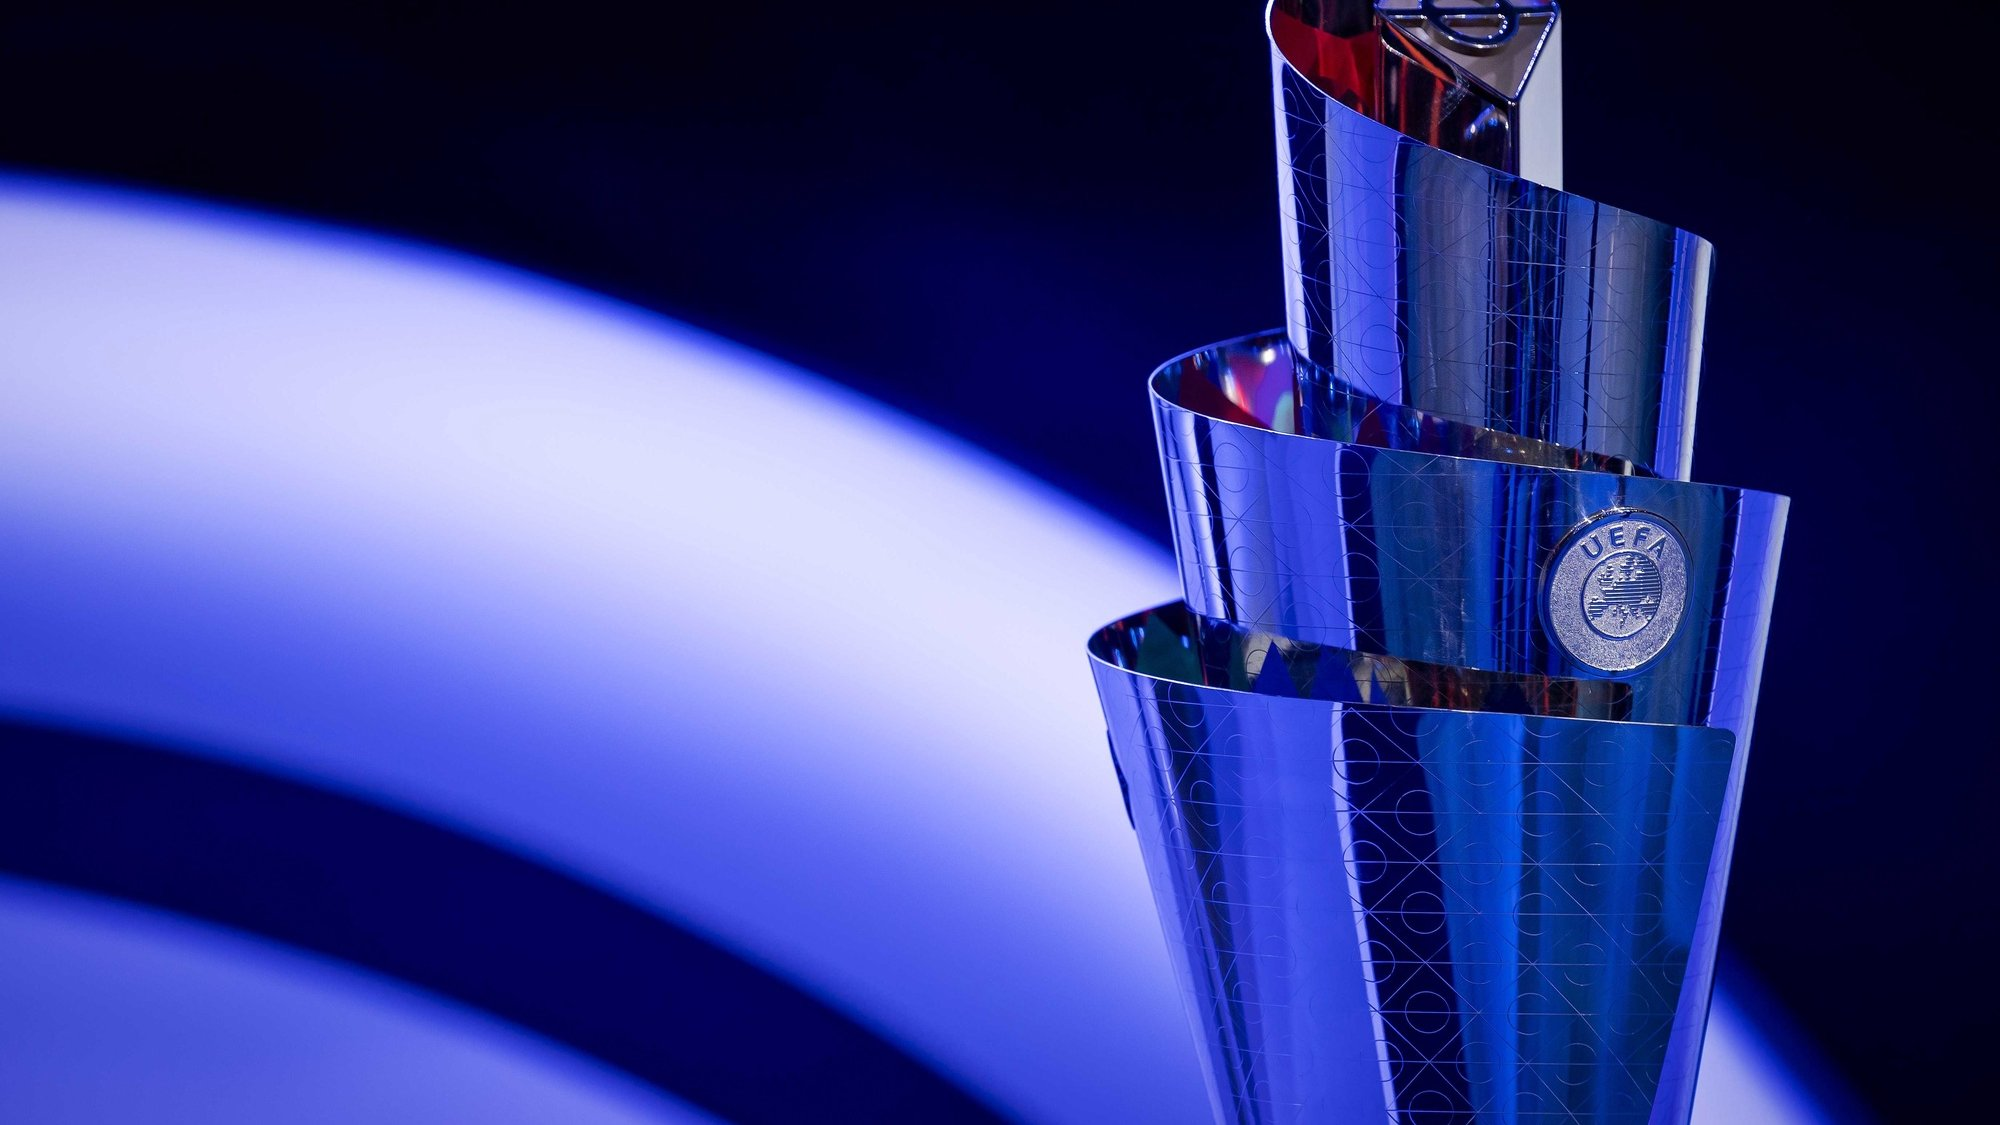 epa08267466 The Trophy on display during the UEFA Nations League 2020-21 Draw for the League A in Amsterdam, The Netherlands, 03 March 2020.  EPA/ROBIN VAN LONKHUIJSEN